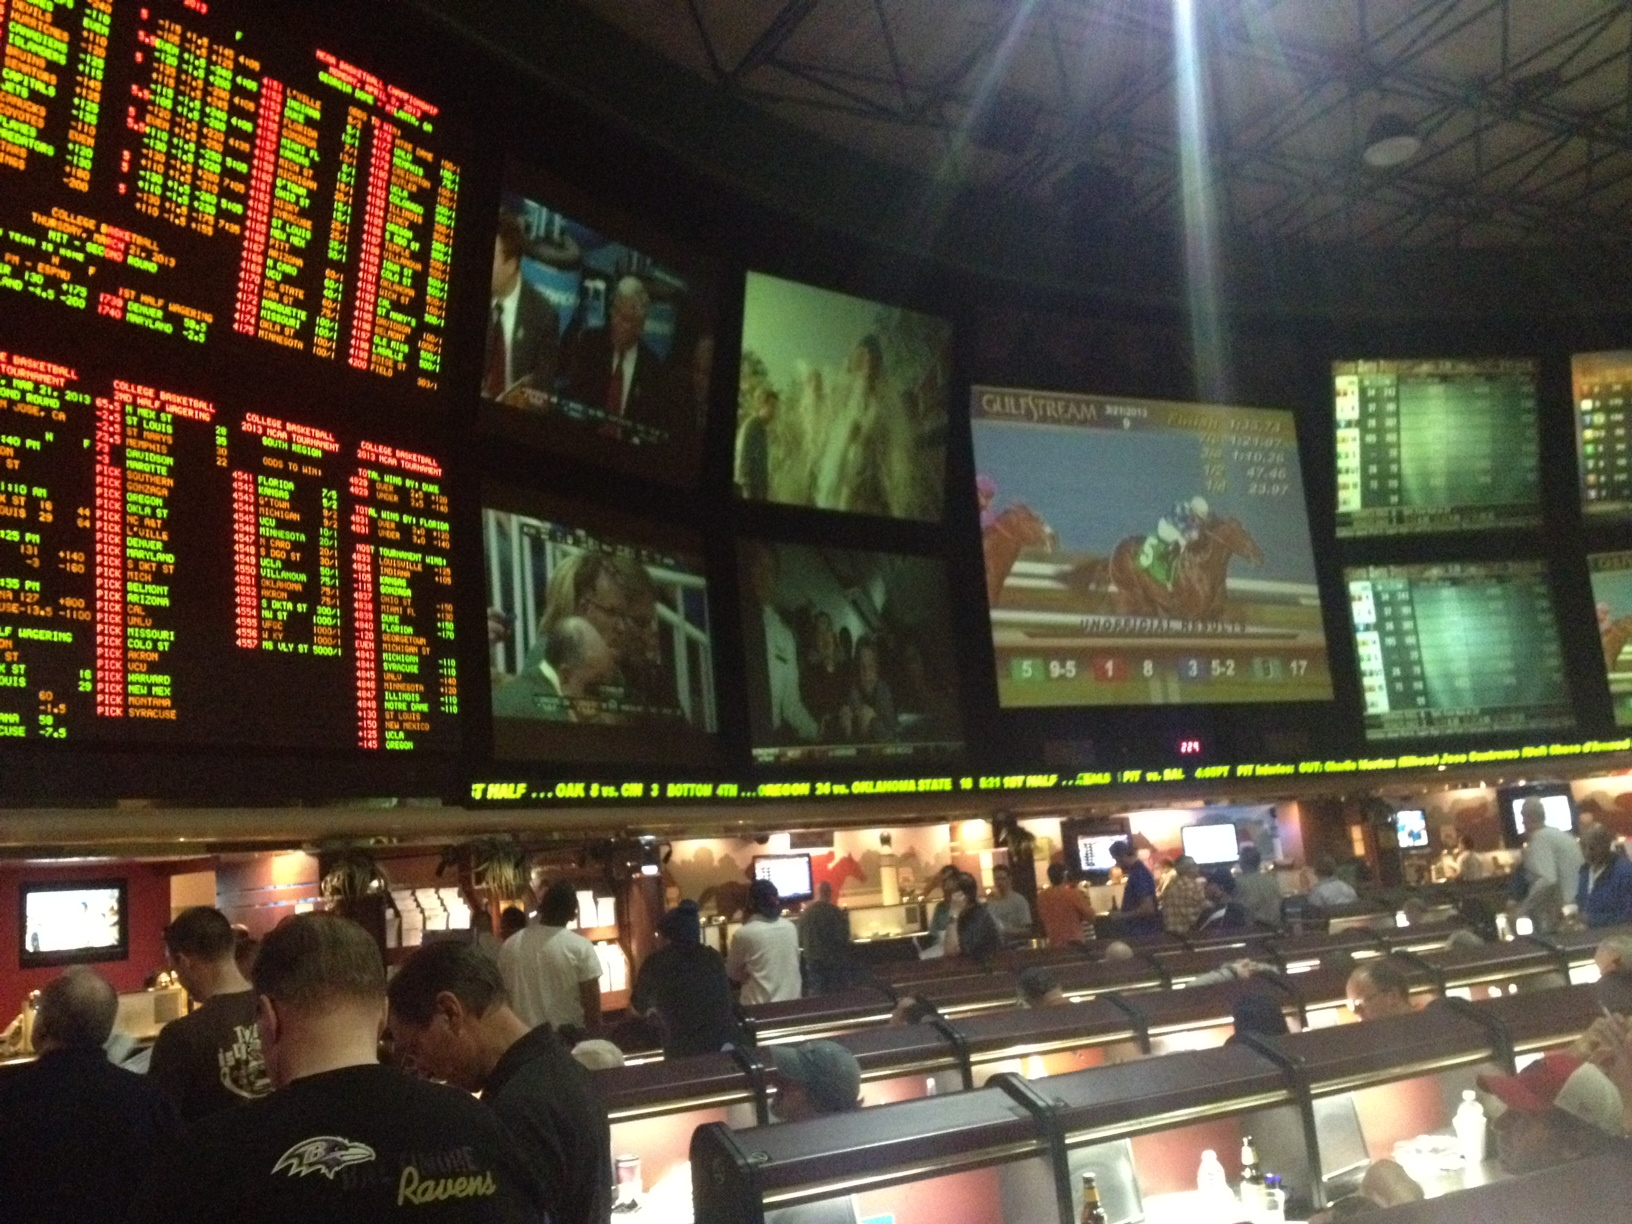 Las Vegas and March Madness: A match made in gamblers' heaven